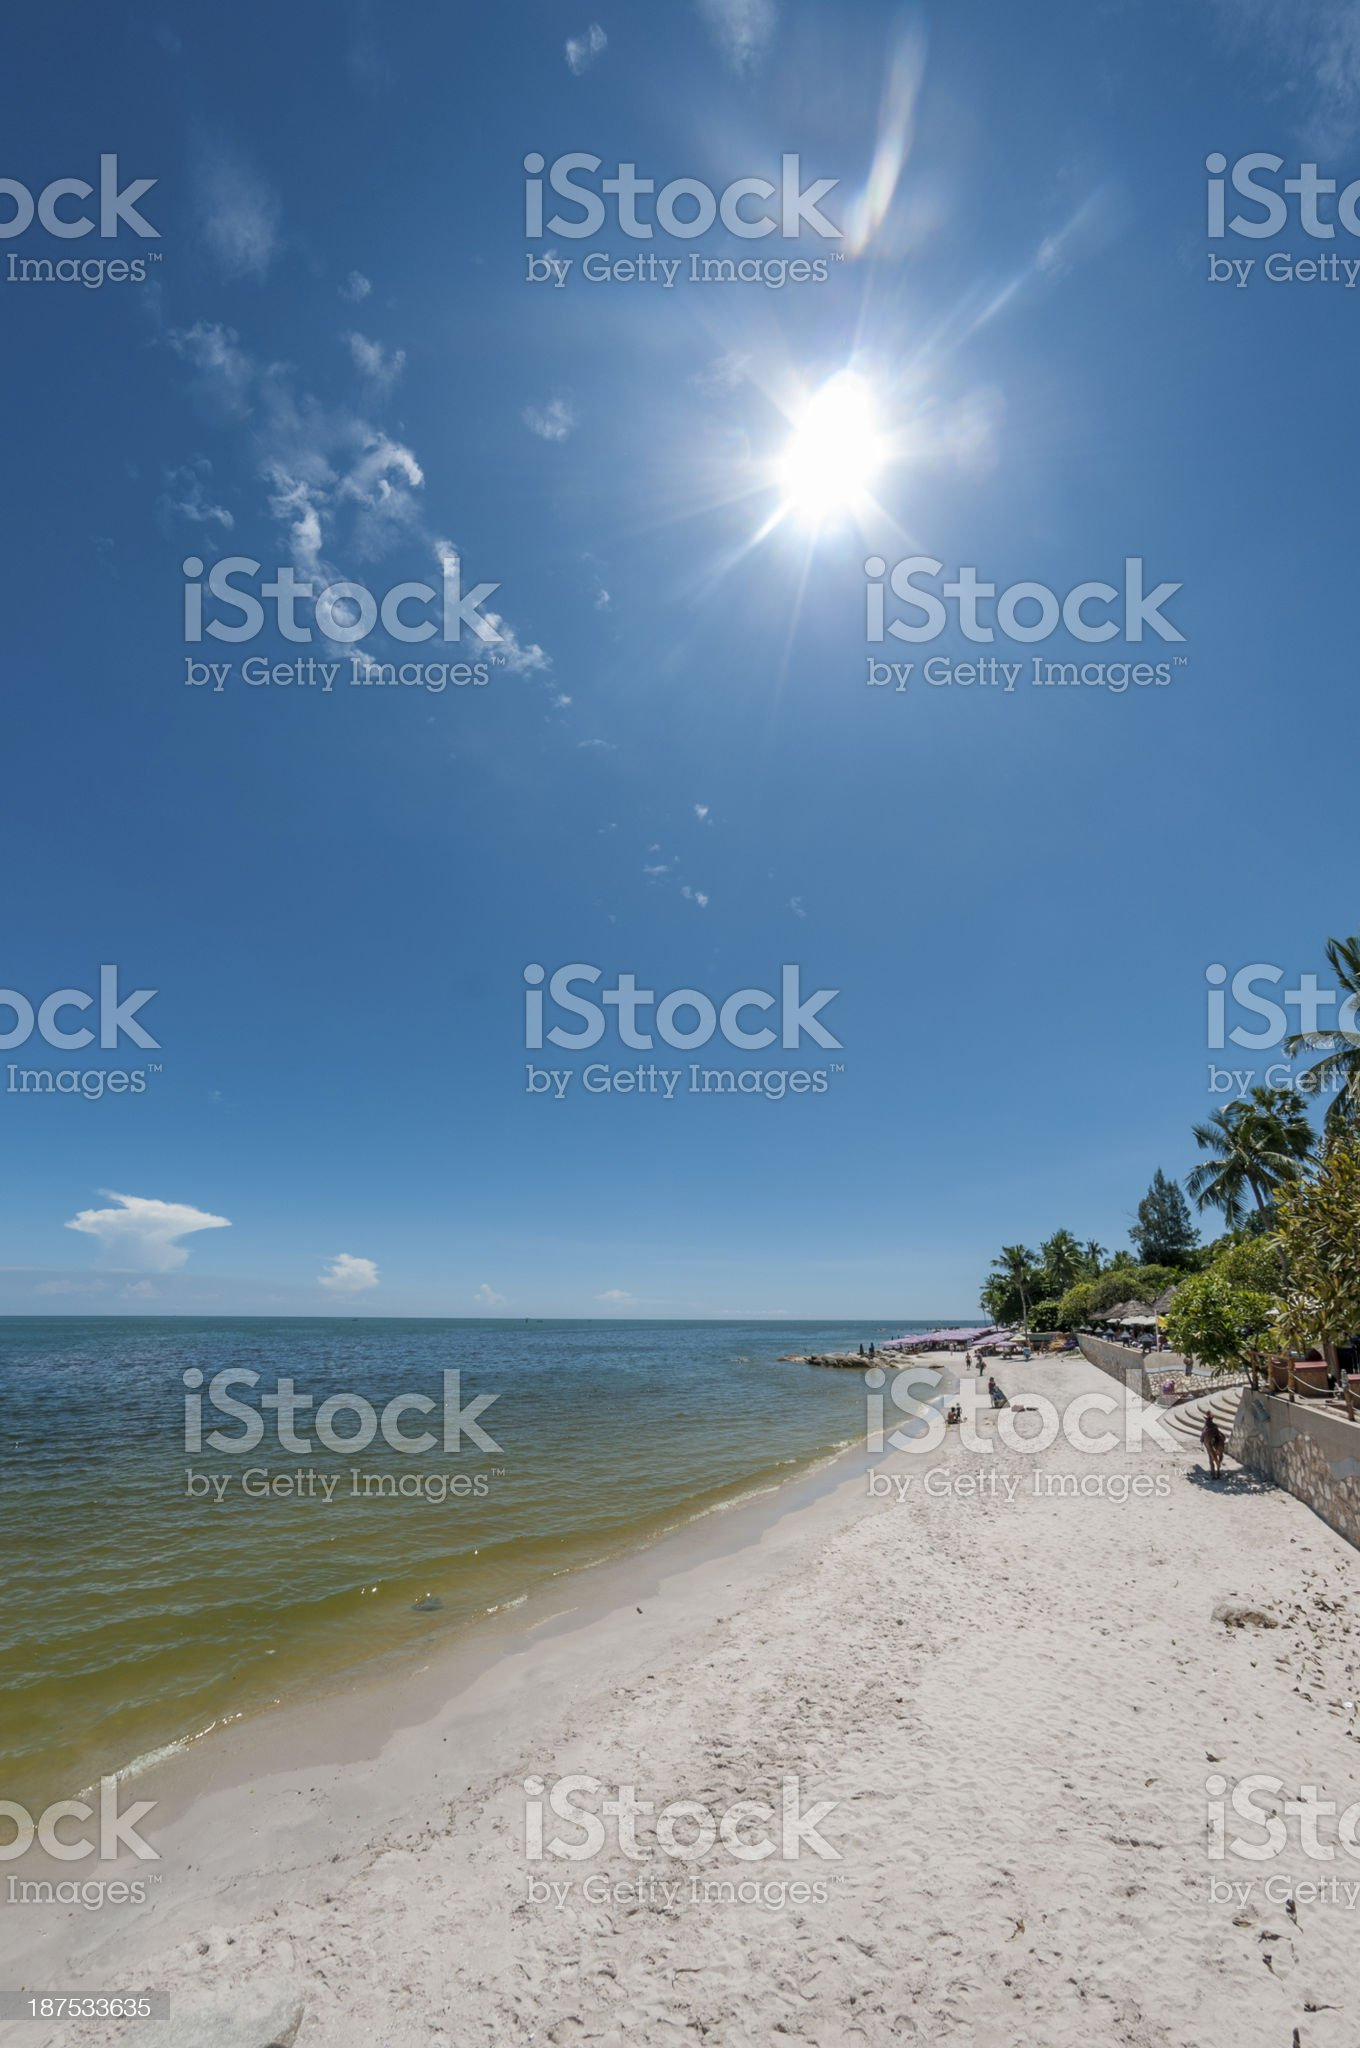 Tropical Beach Resort royalty-free stock photo